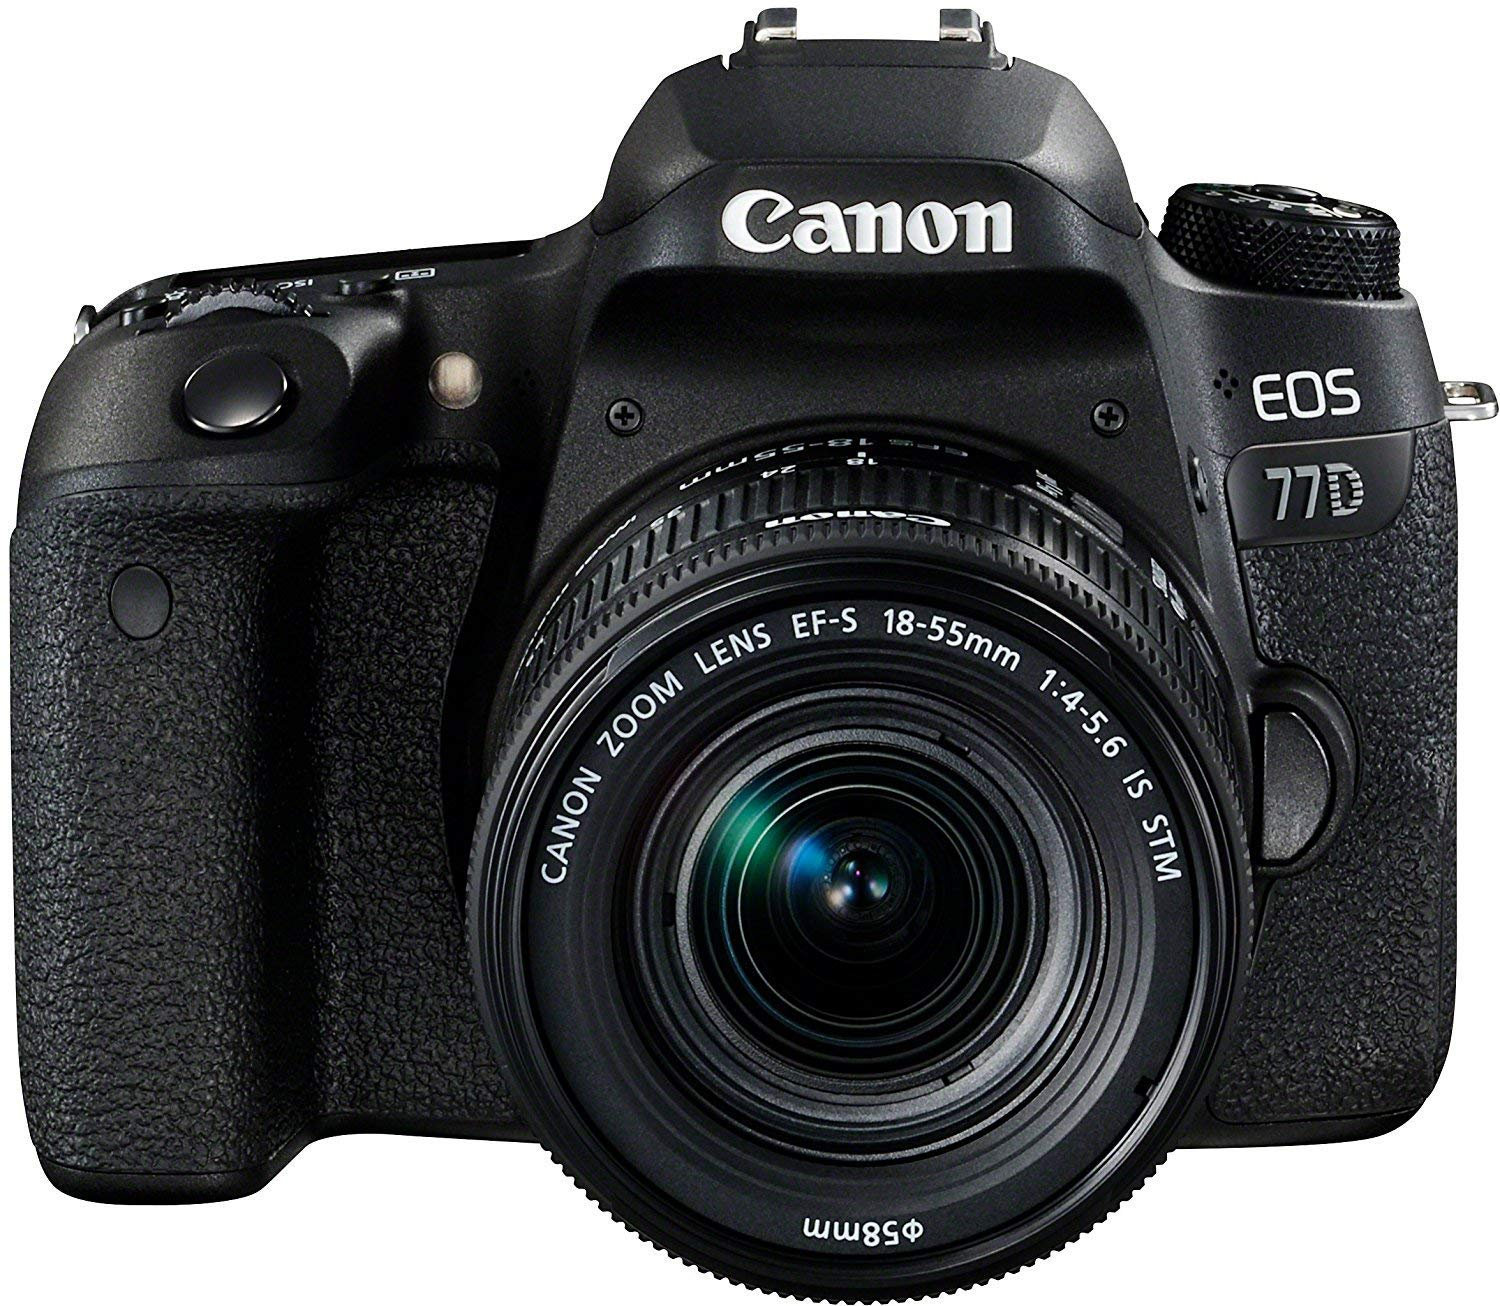 Canon EOS 77D - Cámara réflex DE 24.2 MP (Full HD, WiFi, Bluetooth) + Objetivo EF-S 18-55 F/4-5,6 IS STM - Negro